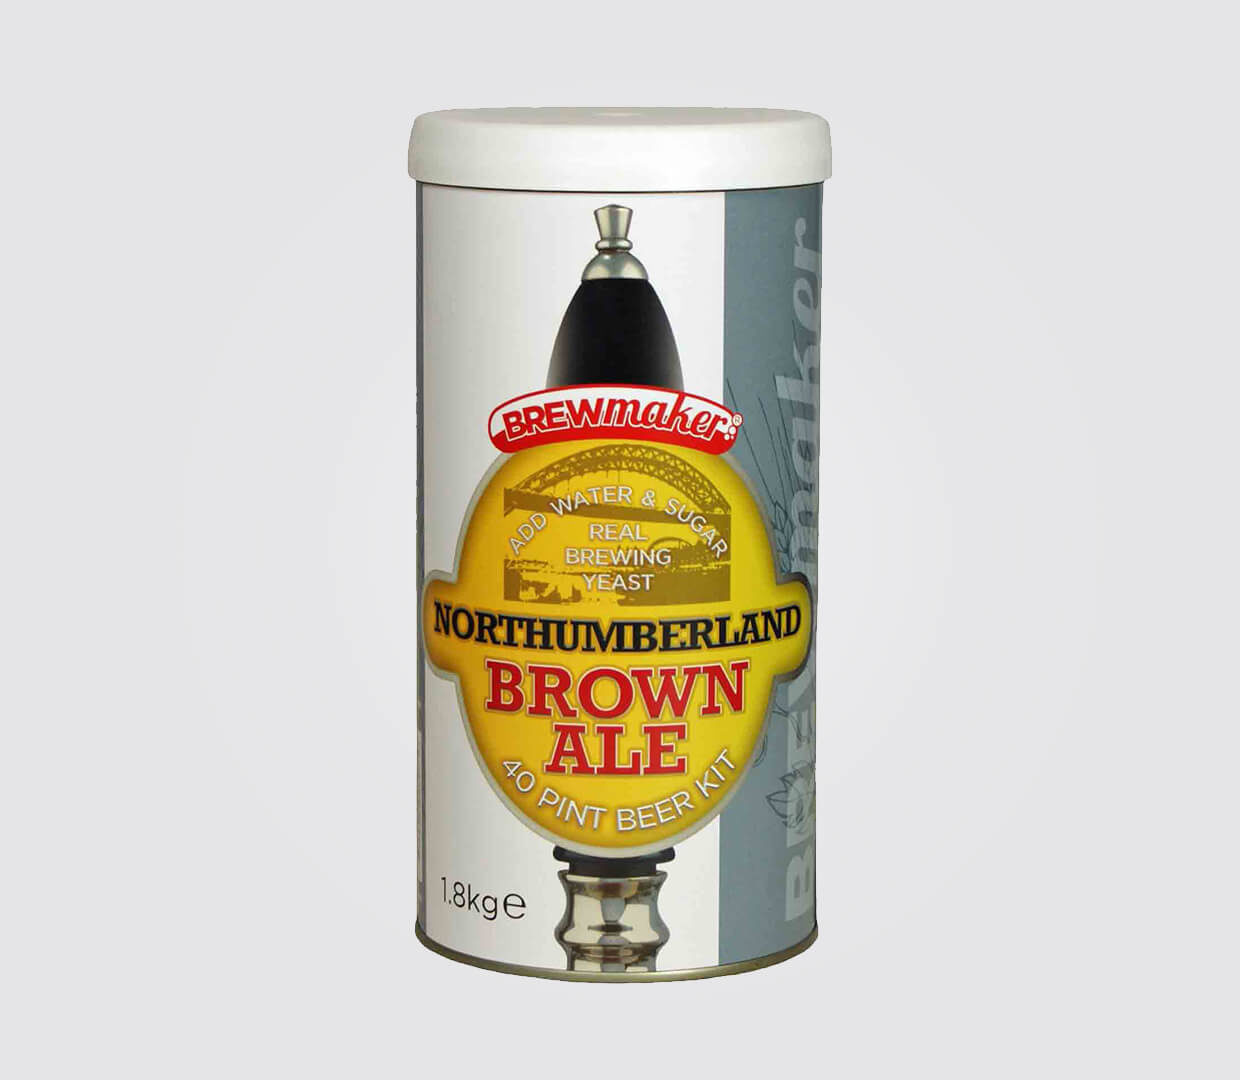 Brewmaker Northumberland Brown Ale